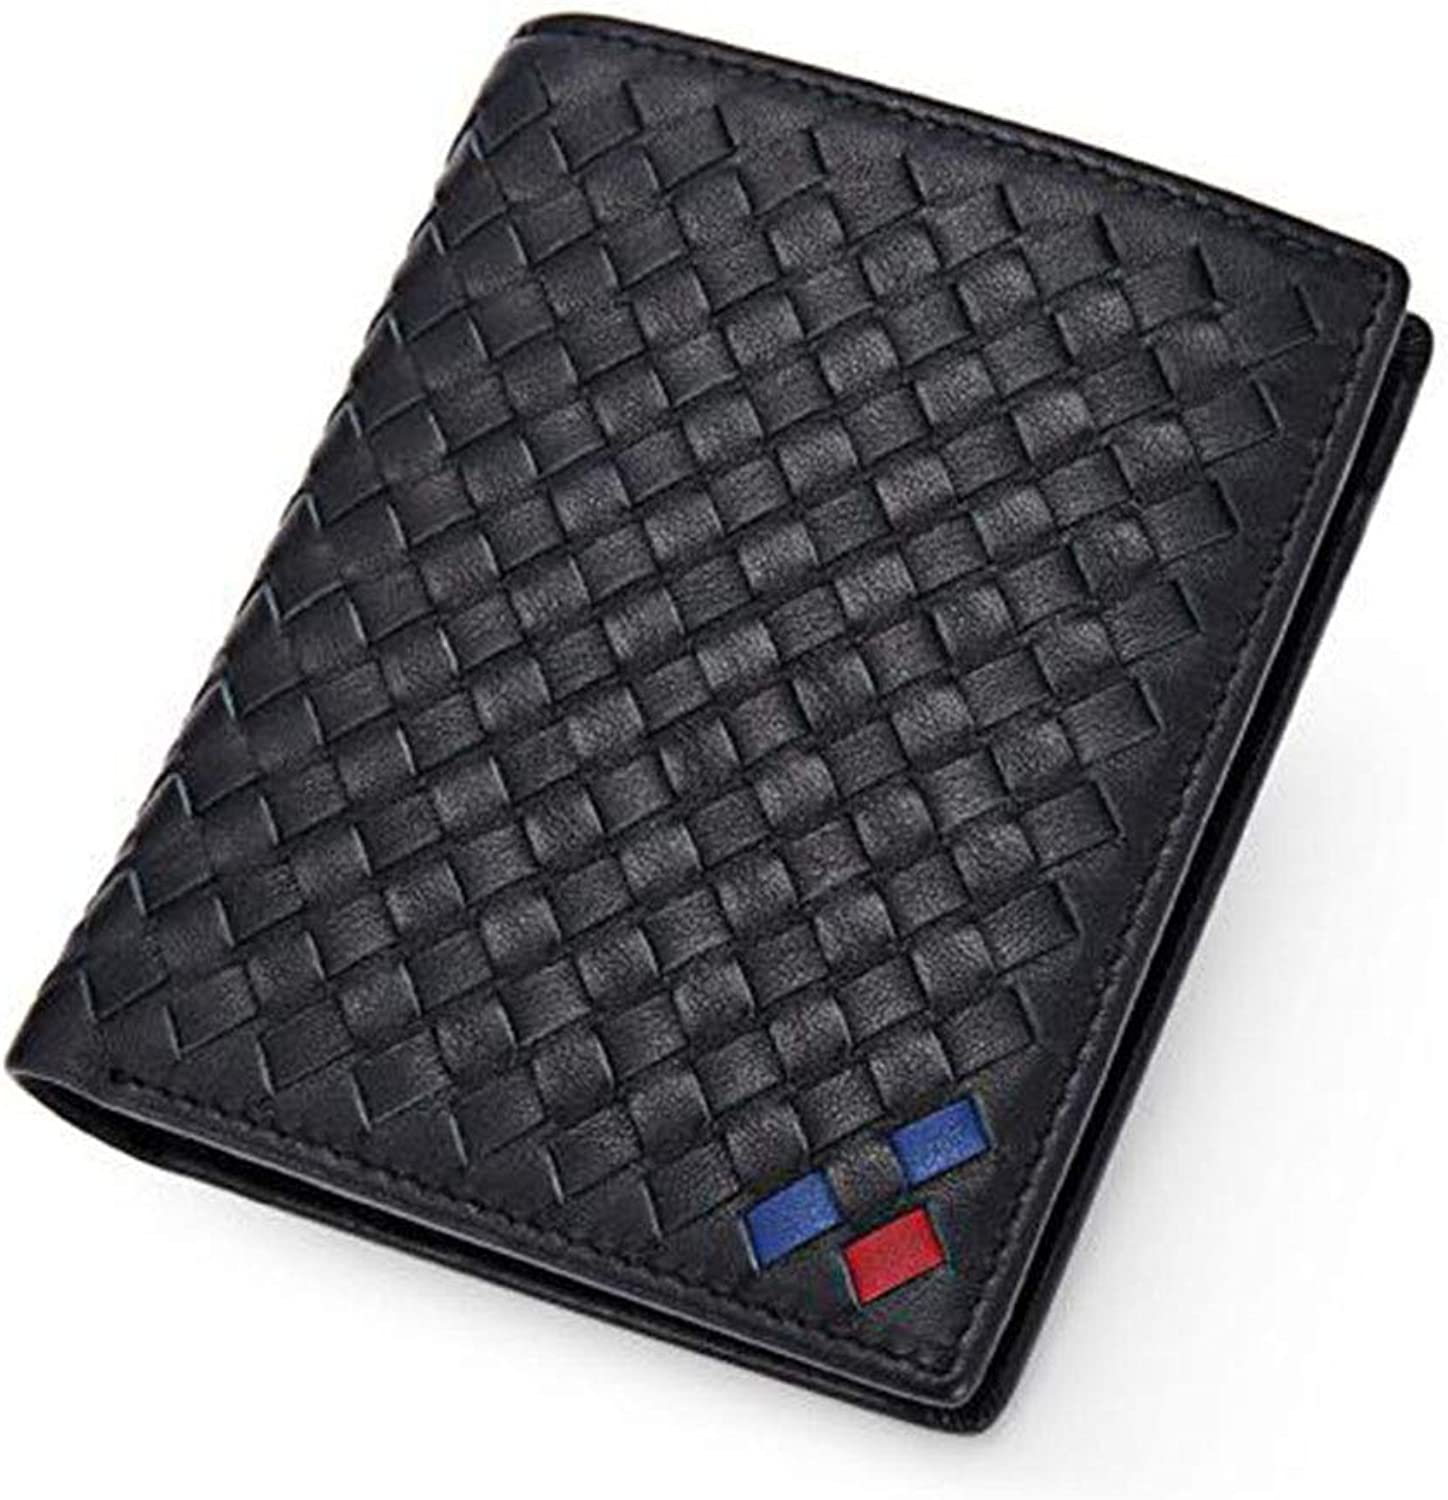 7e0f53c7285c Huijunwenti Men's Hand Woven Fashion Leather Wallet - - - Black Wallet  (Style greenical Style) c9d5a2